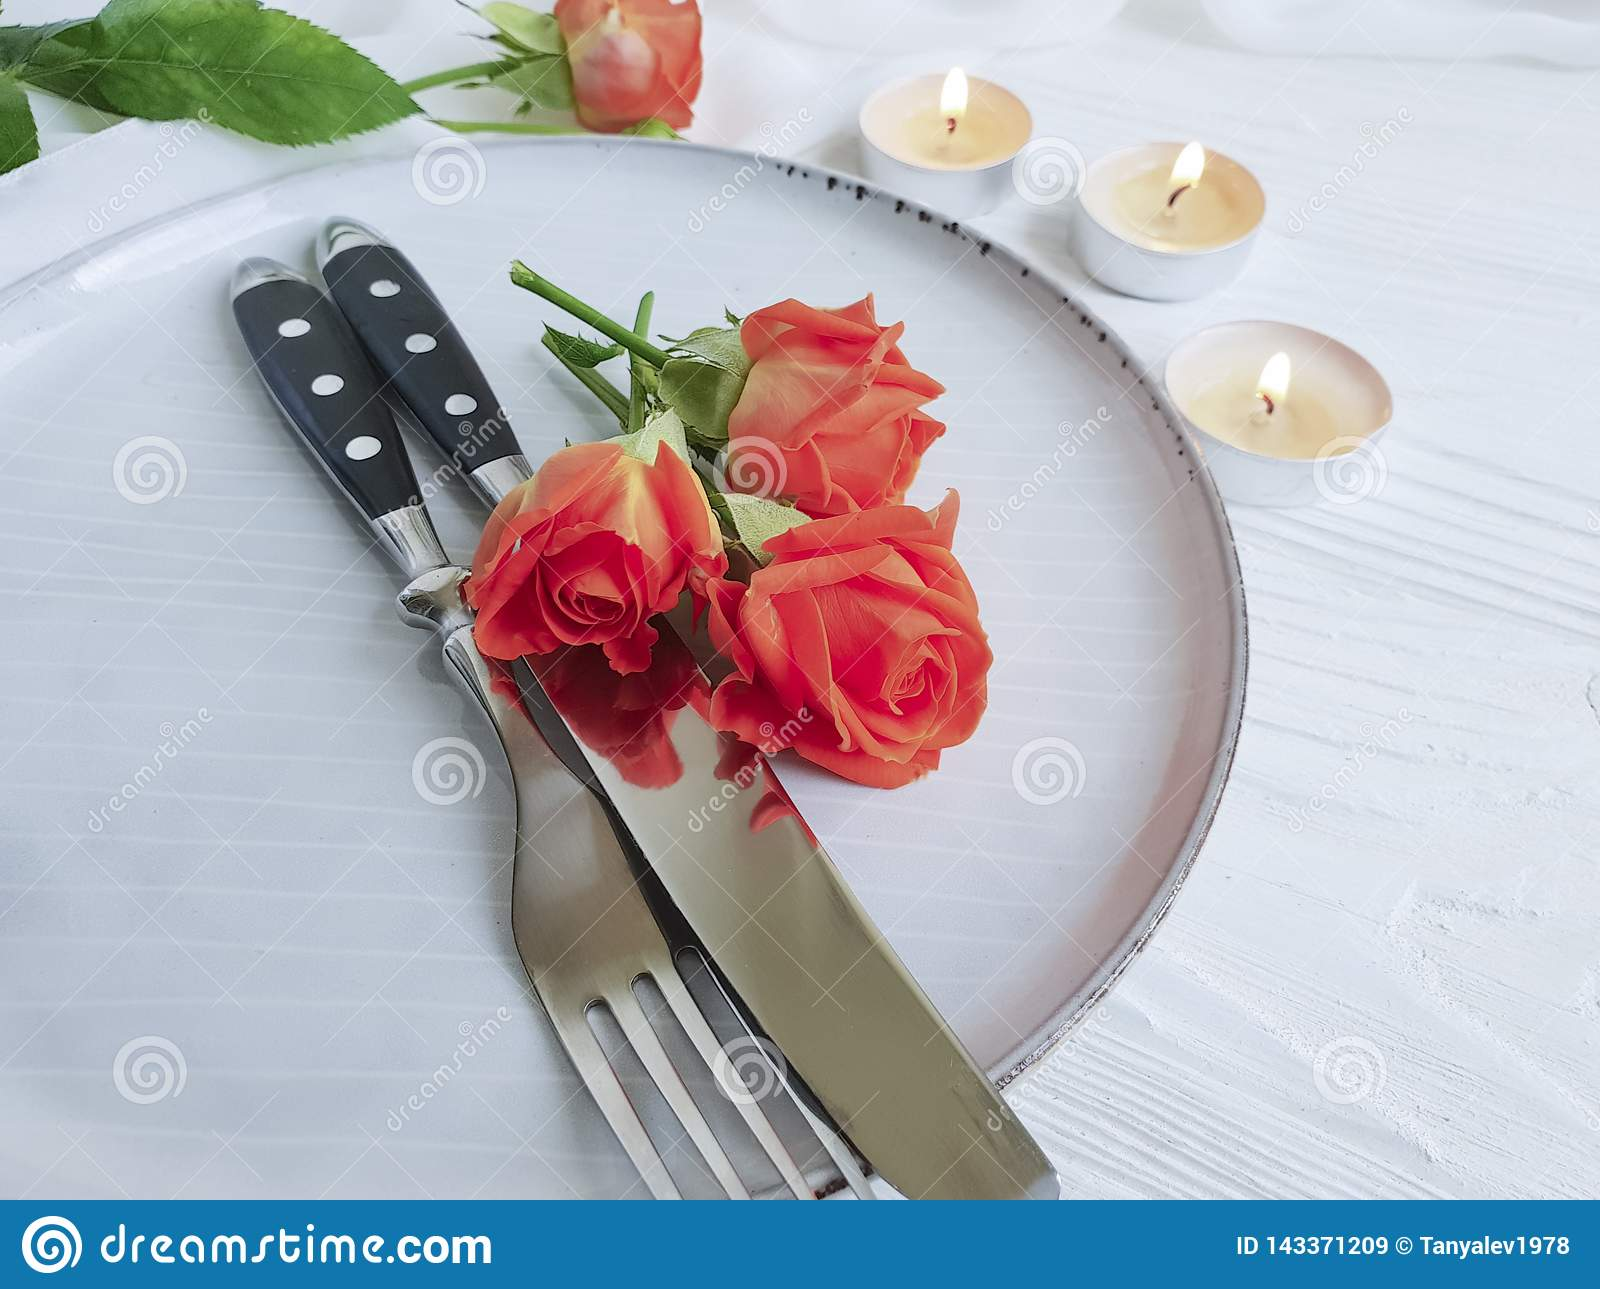 Rose Flower Plate Candle Decoration Cutlery Elegance Romantic